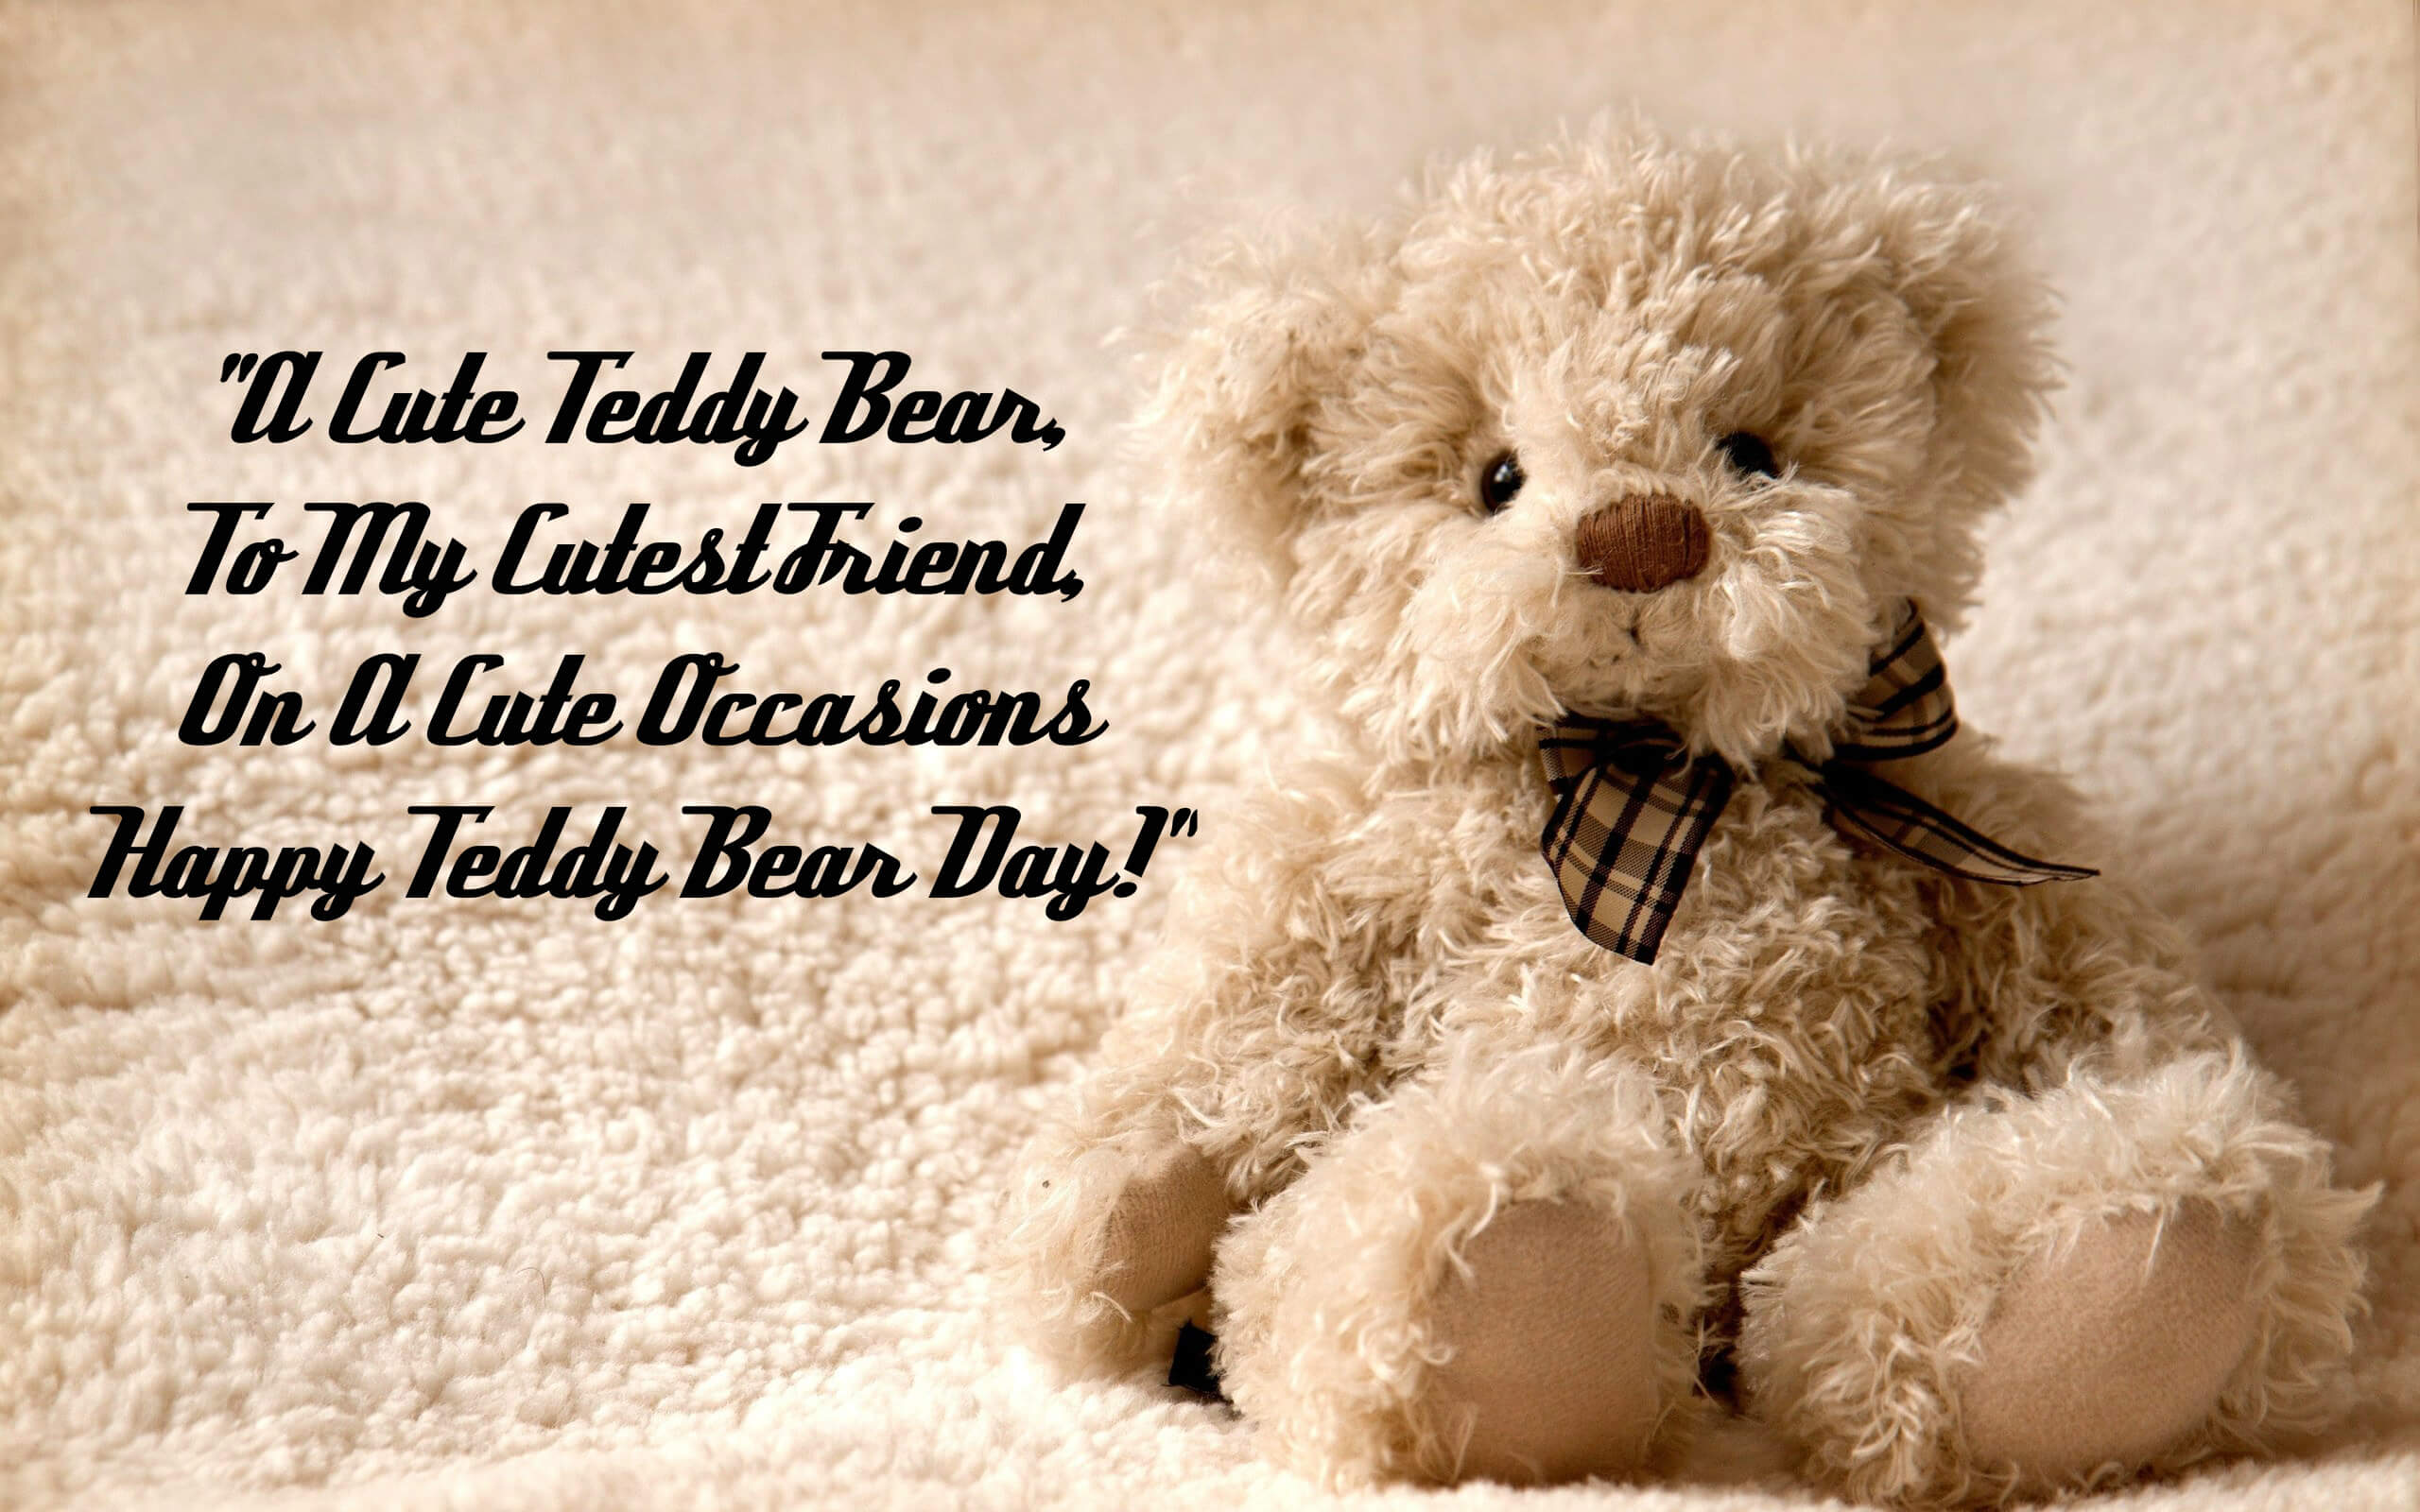 Latest Teddy Day Image